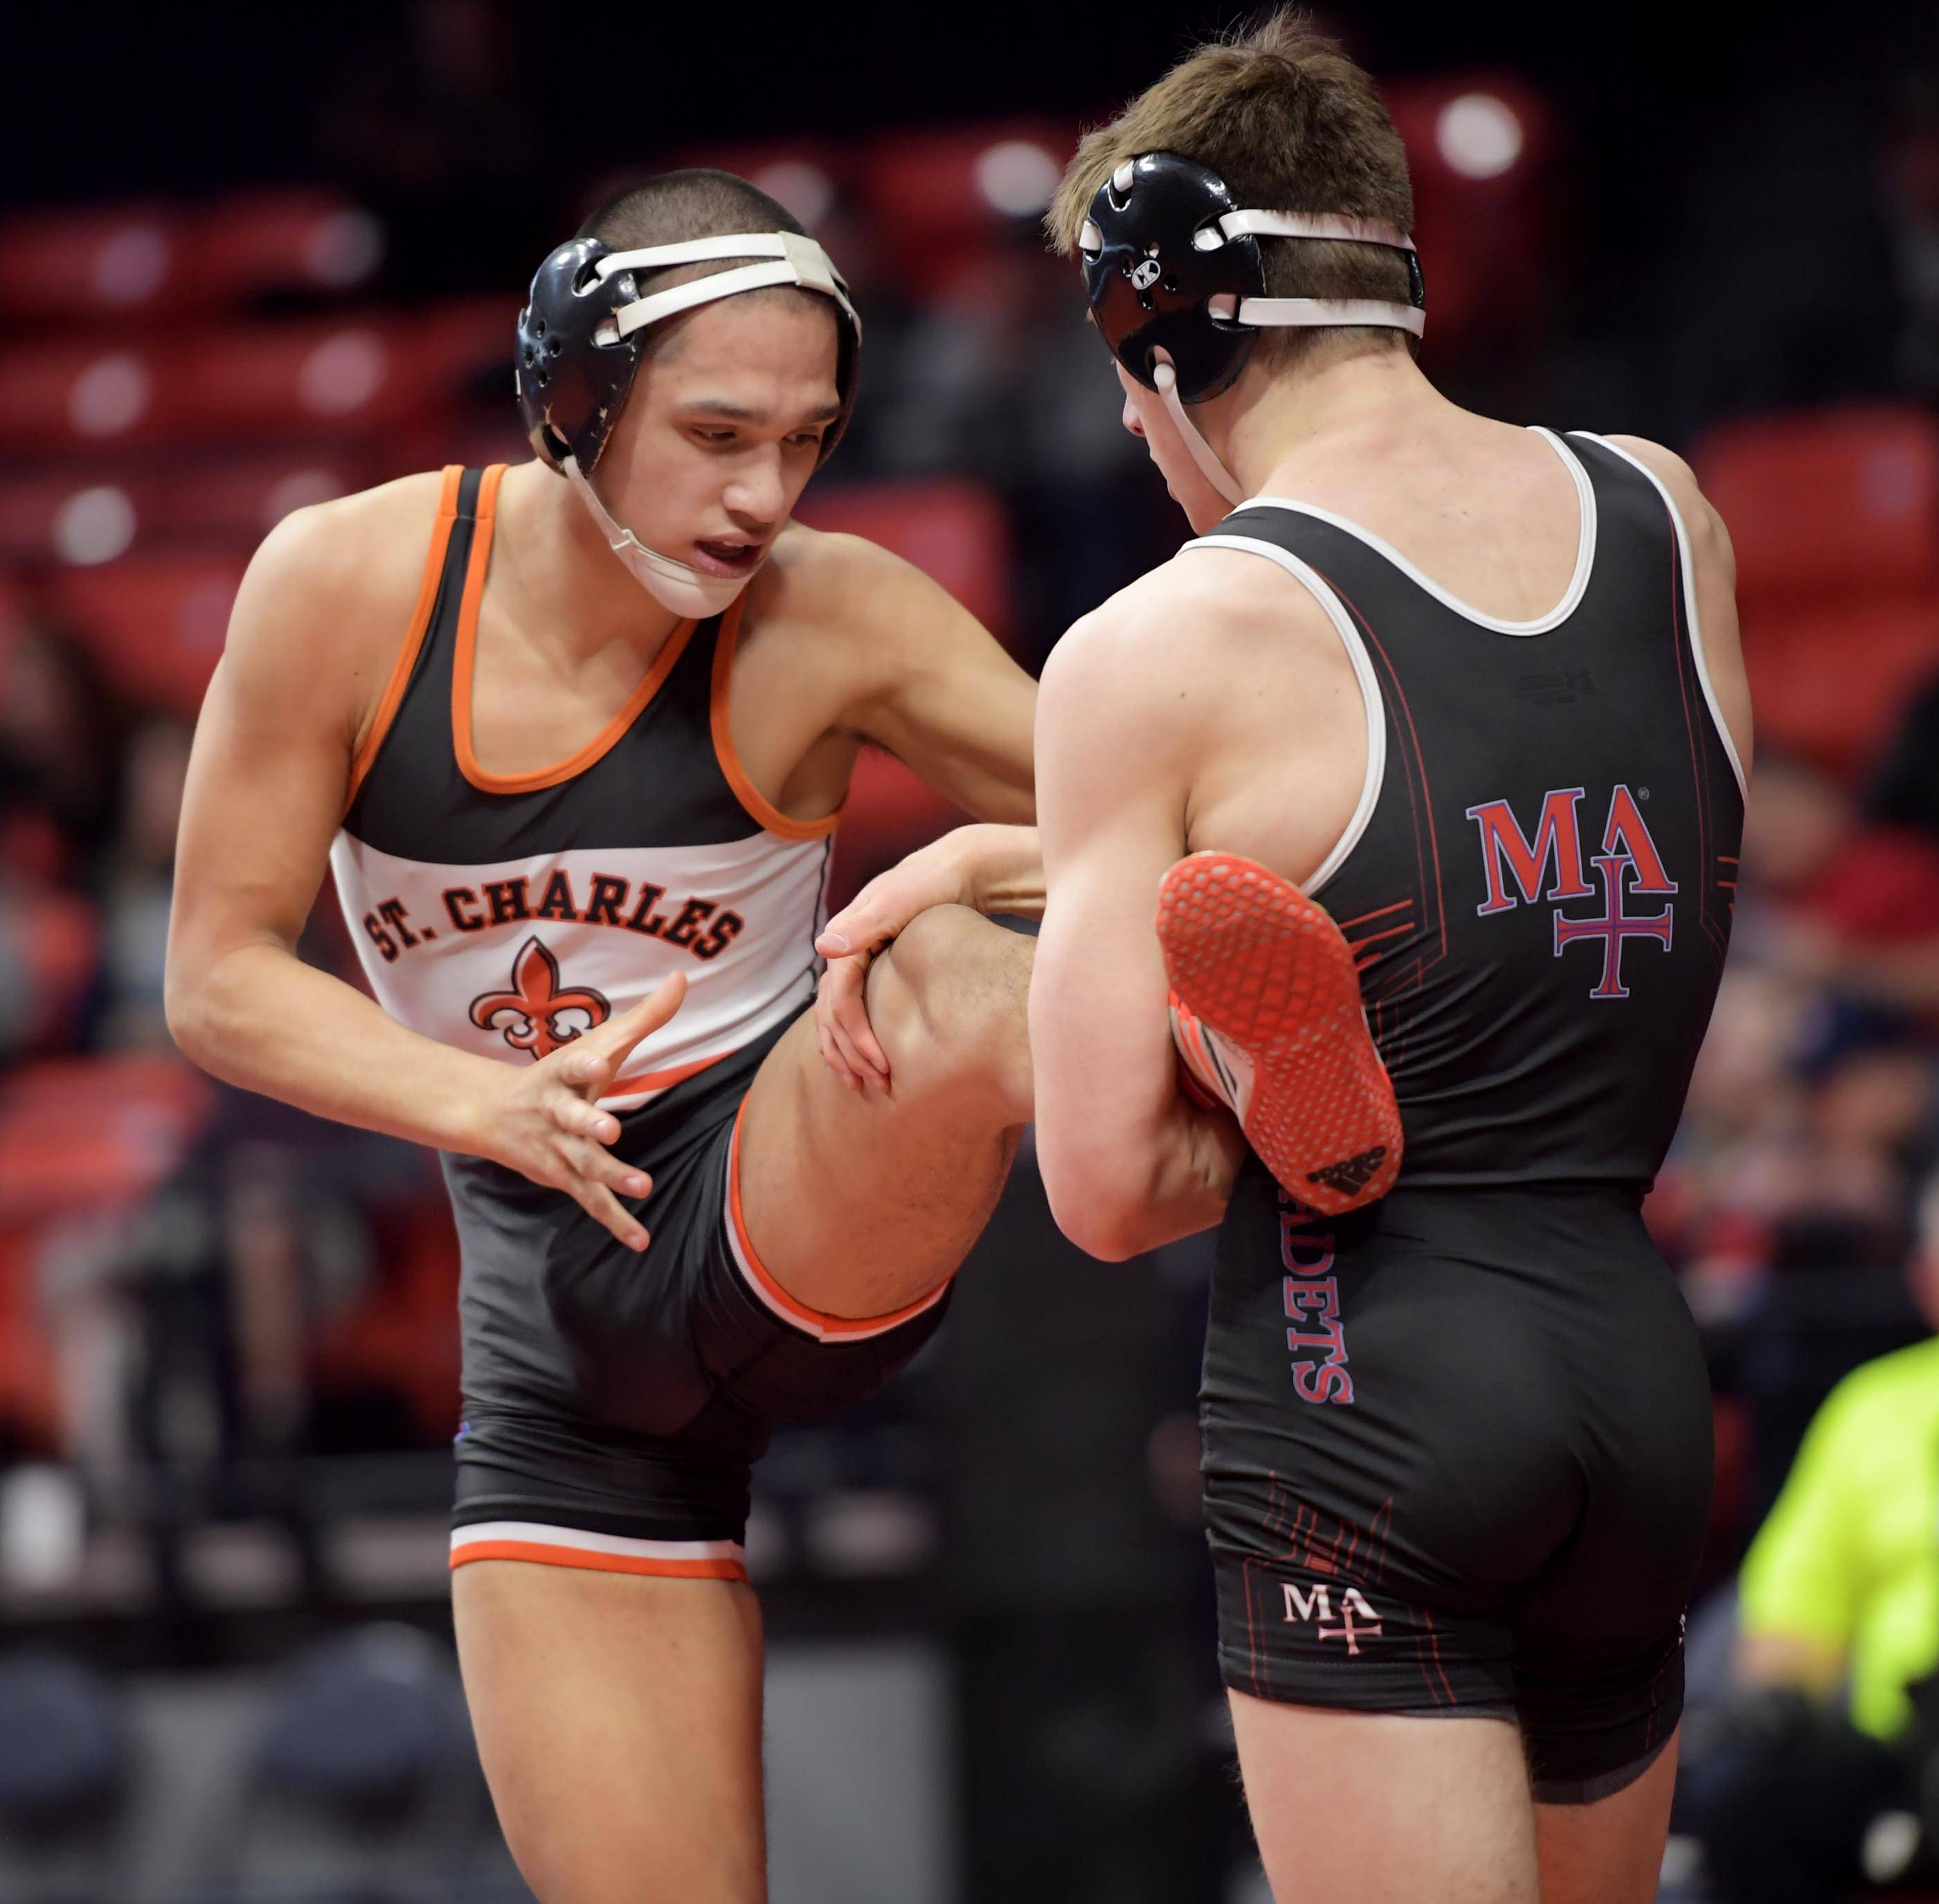 Burlington Central's Macias, Termini fly into state title bouts